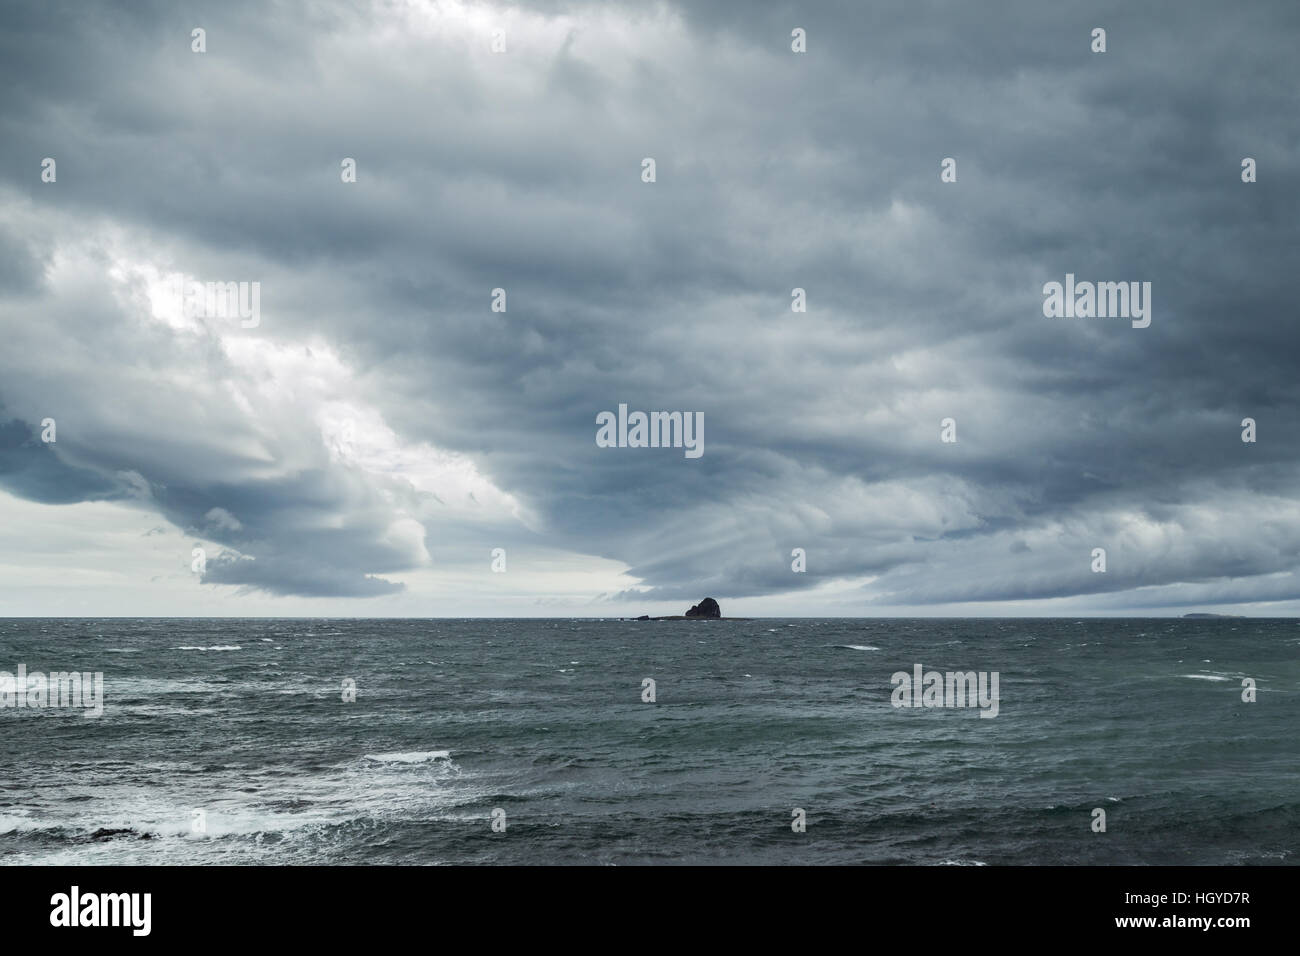 Dramatic and dark clouds above ocean on Jeju Island in South Korea. - Stock Image